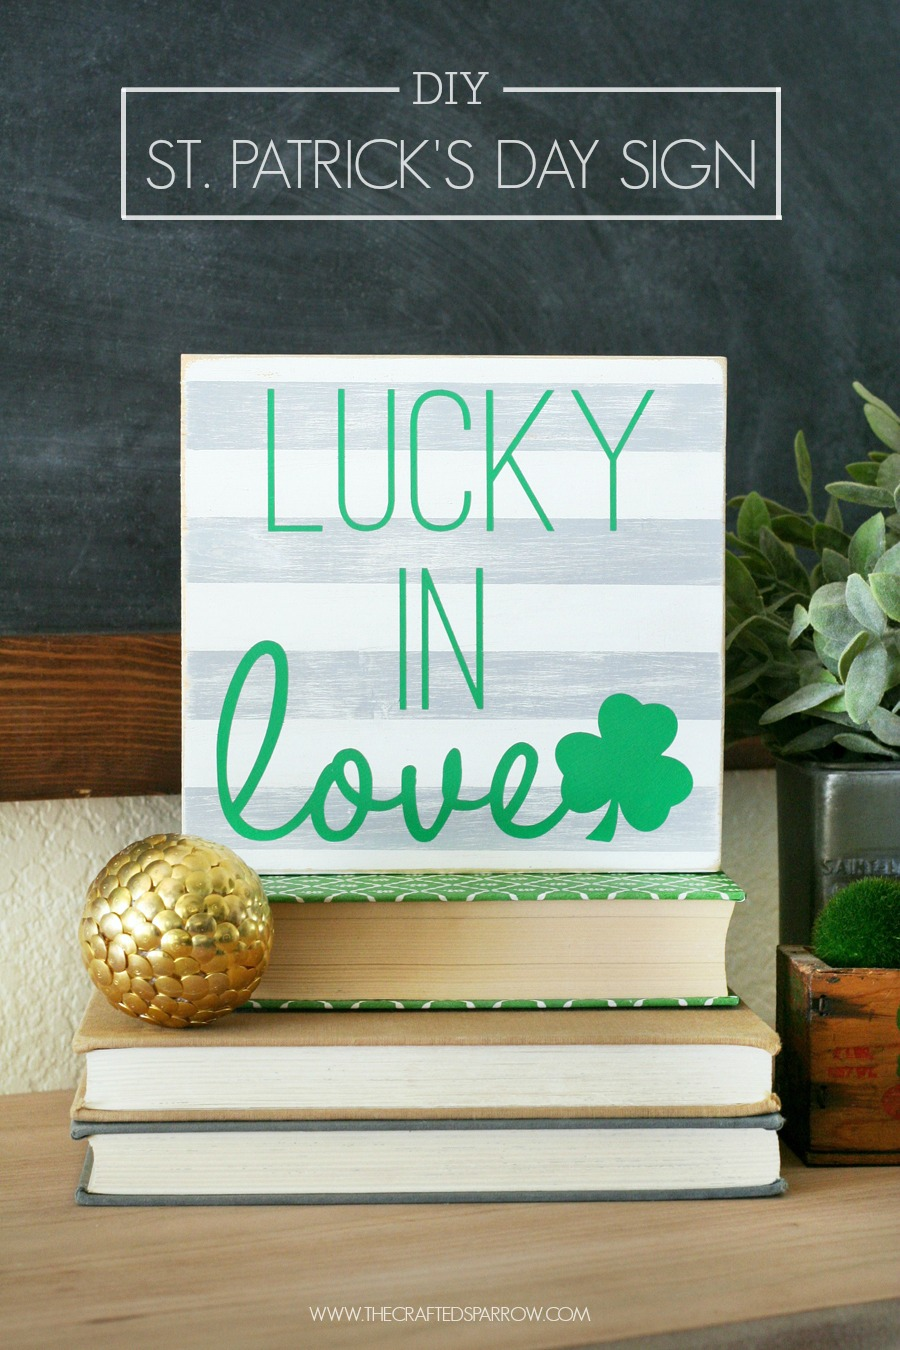 DIY St. Patrick's Day Sign